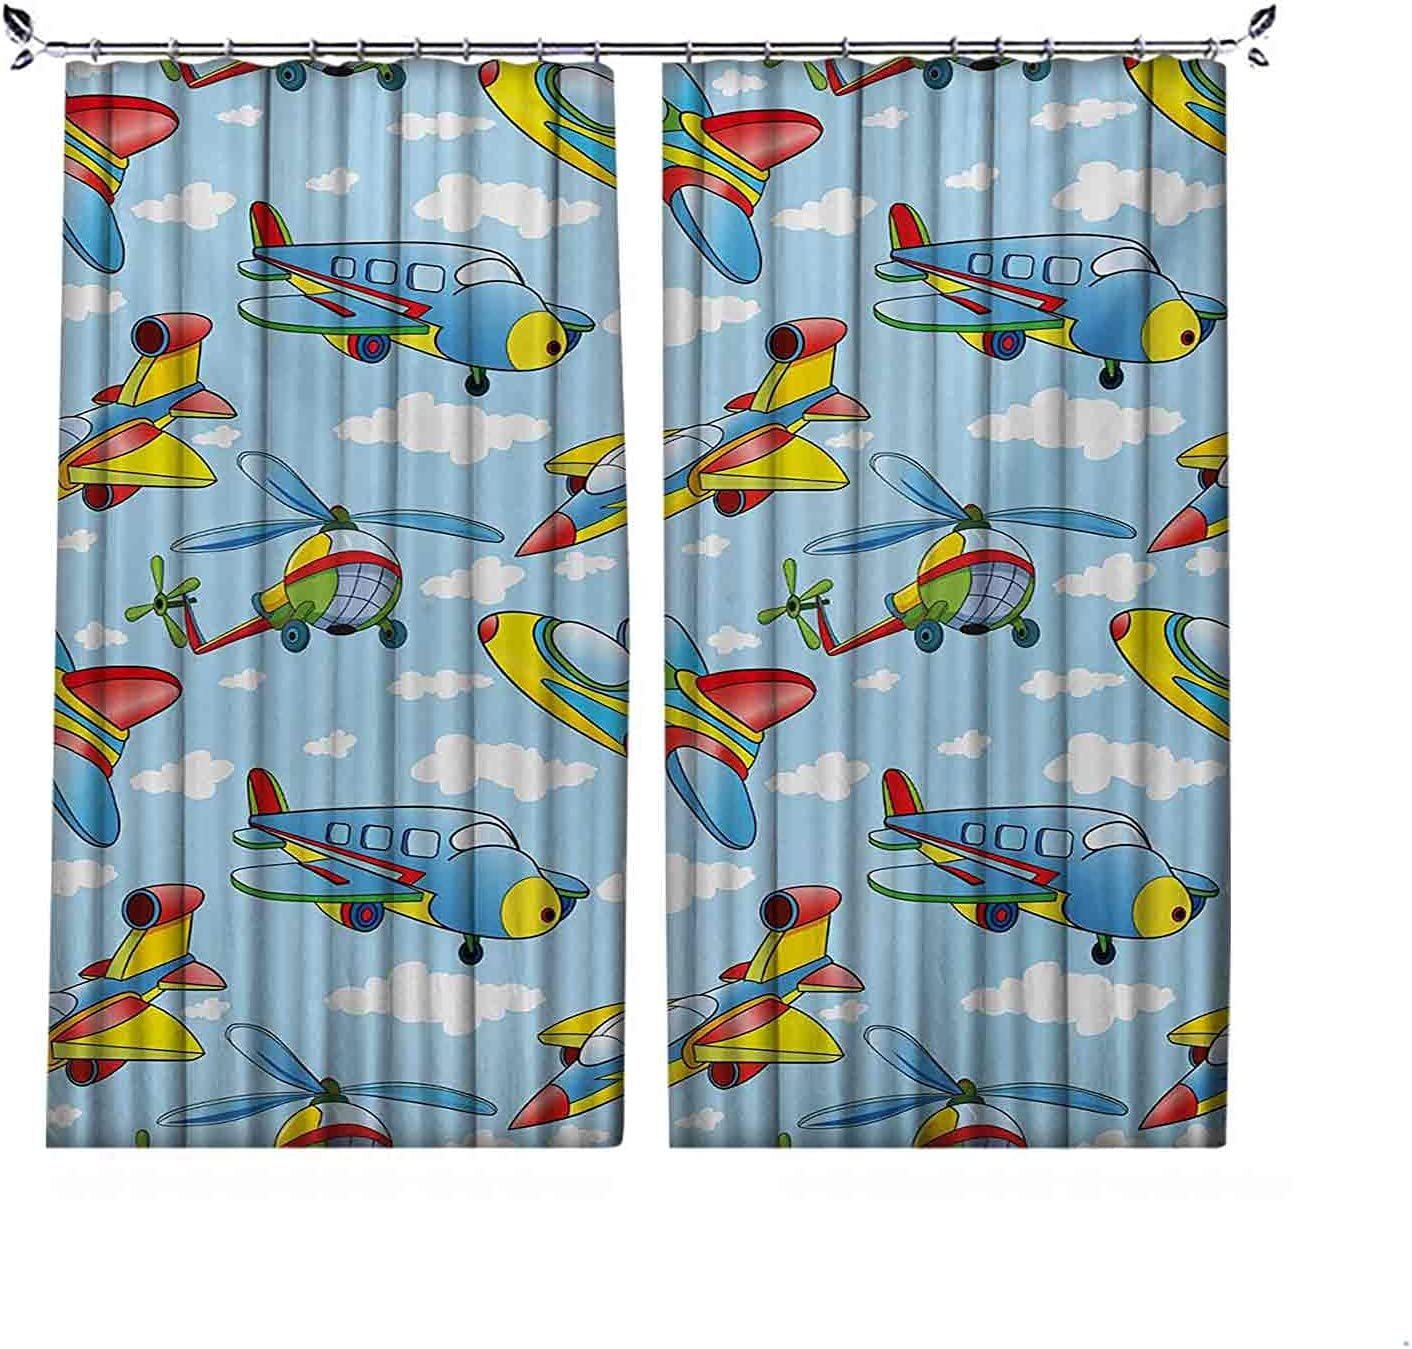 Room Darkening Kids Curtain Max 68% OFF Cartoon Planes and T Bargain sale Helicopters in